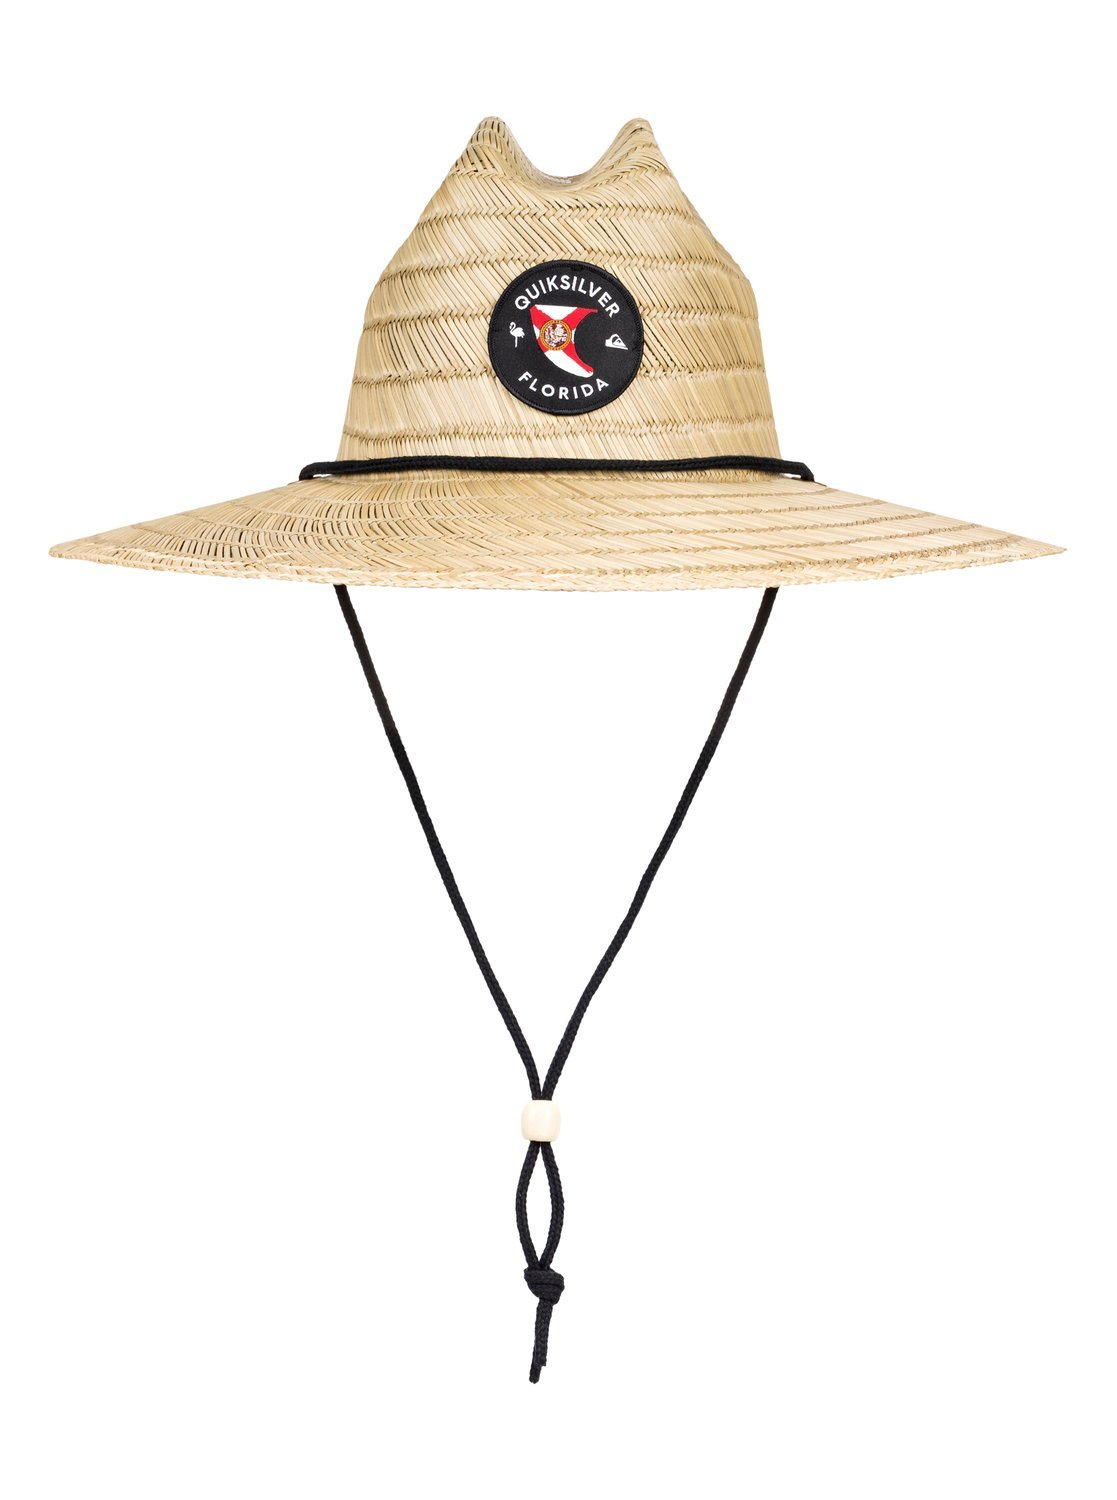 43ae17ca33155 ... switzerland quiksilver mens destinado pierside sun protection hat black  california s m aqyha04183 34952 bef36